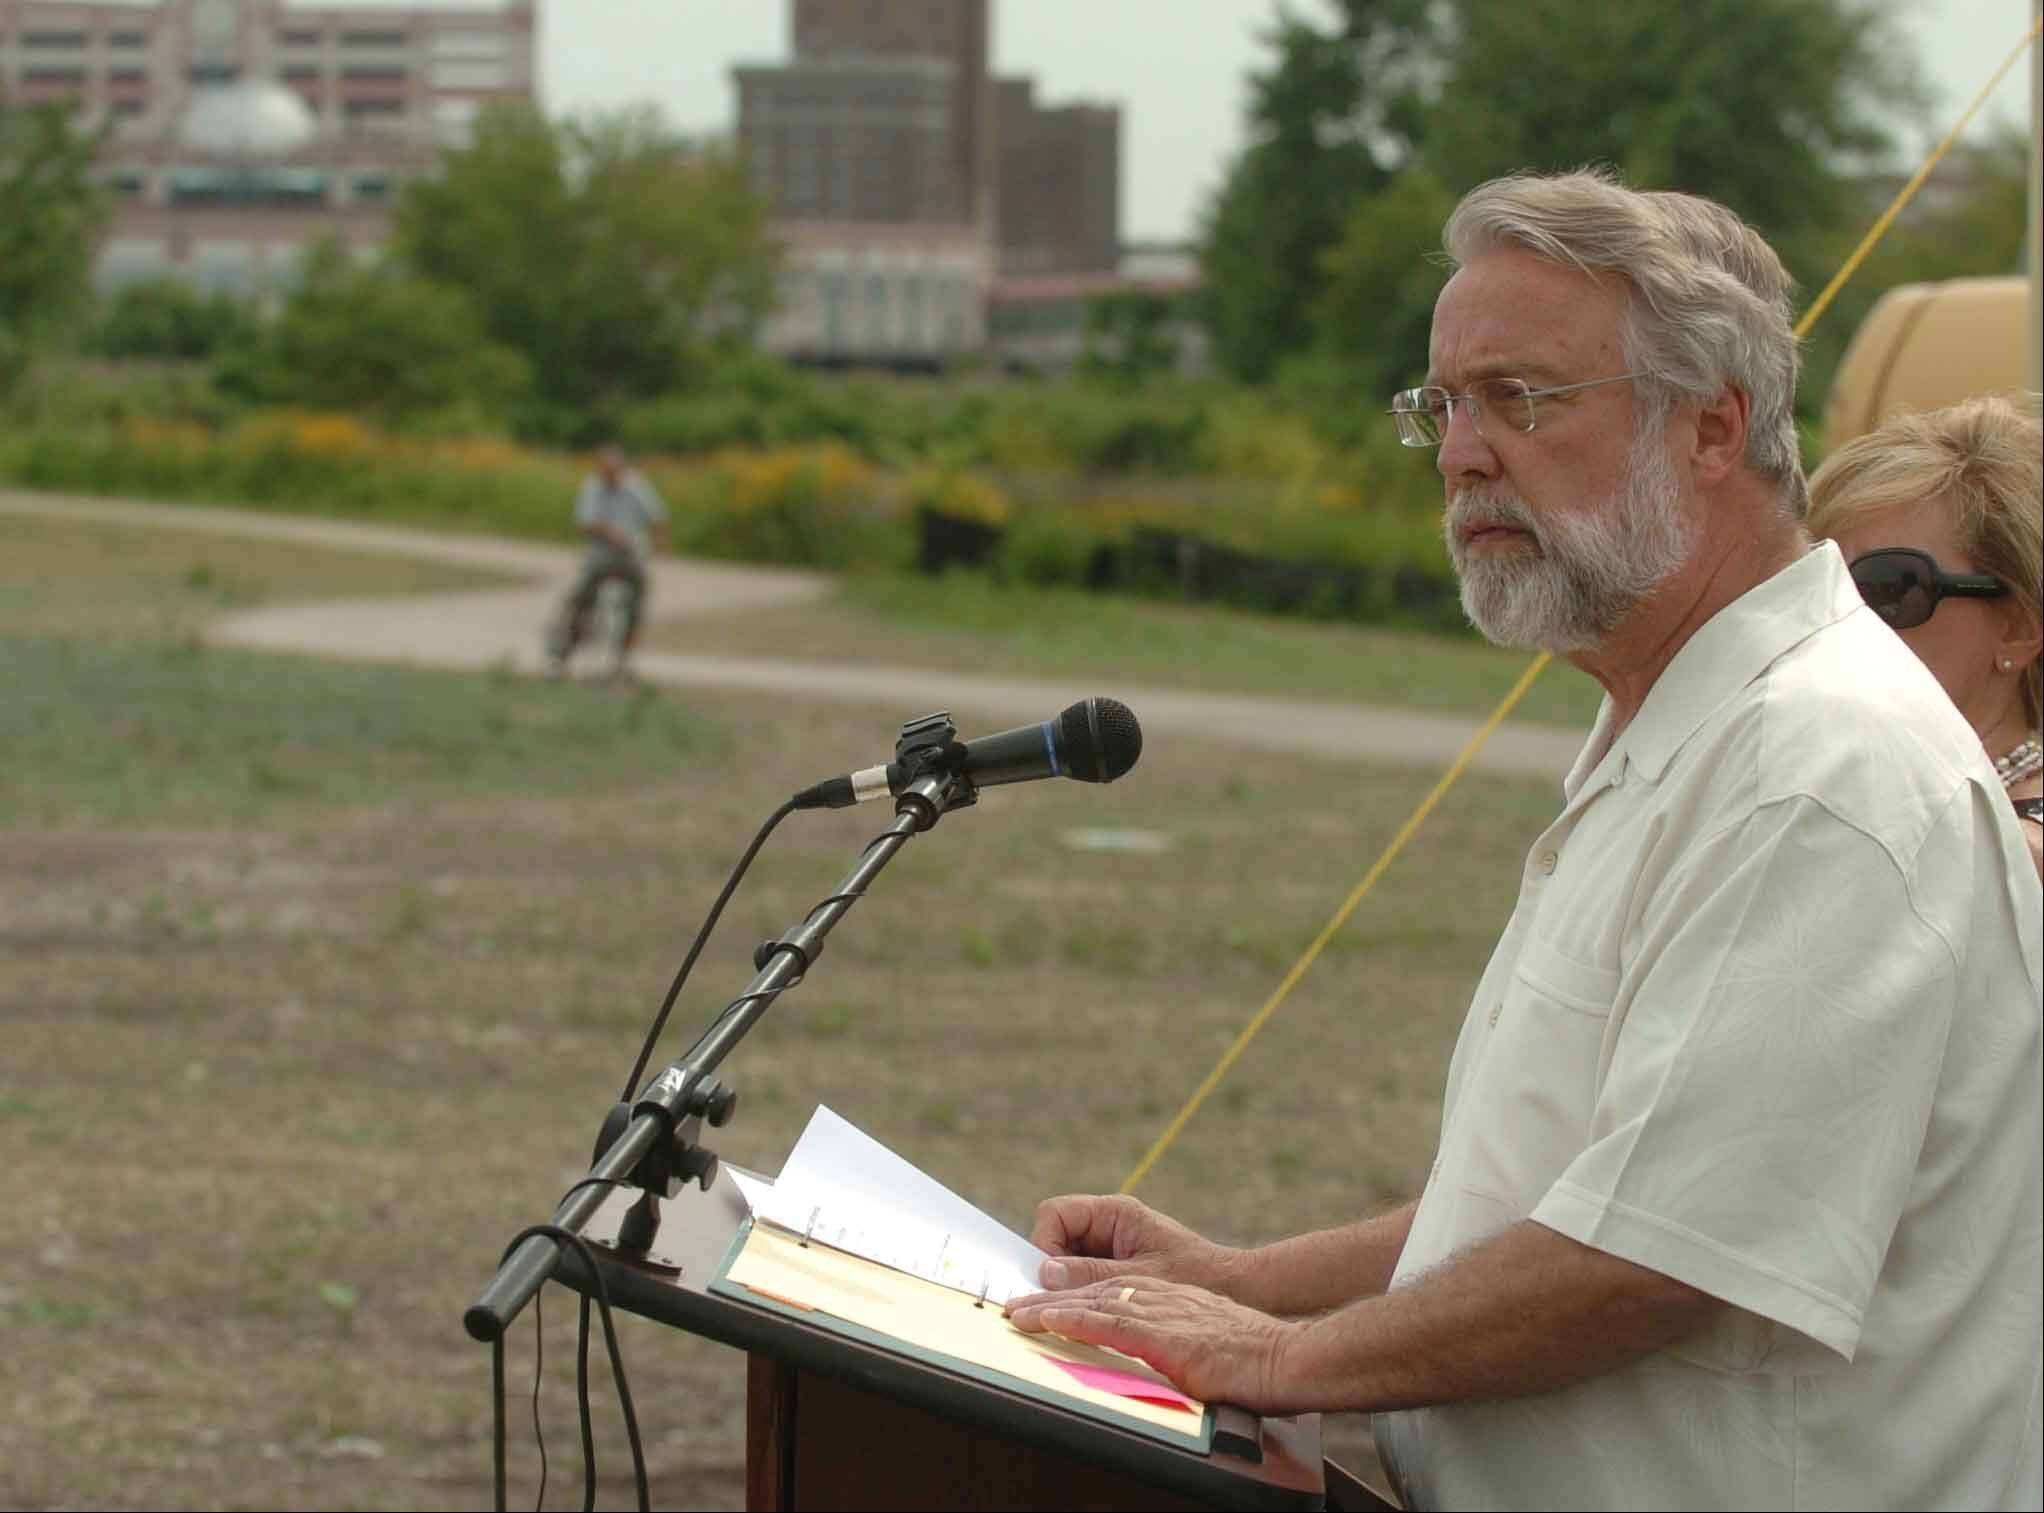 Aurora Mayor Tom Weisner, shown here at the RiverEdge Park groundbreaking in July 2011, has said the park's Music Garden will carry on Aurora's musical tradition, especially in blues music. The $18.5 million Music Garden is set to host the 17th annual Blues on the Fox festival June 14 and 15 as part of its grand opening weekend.